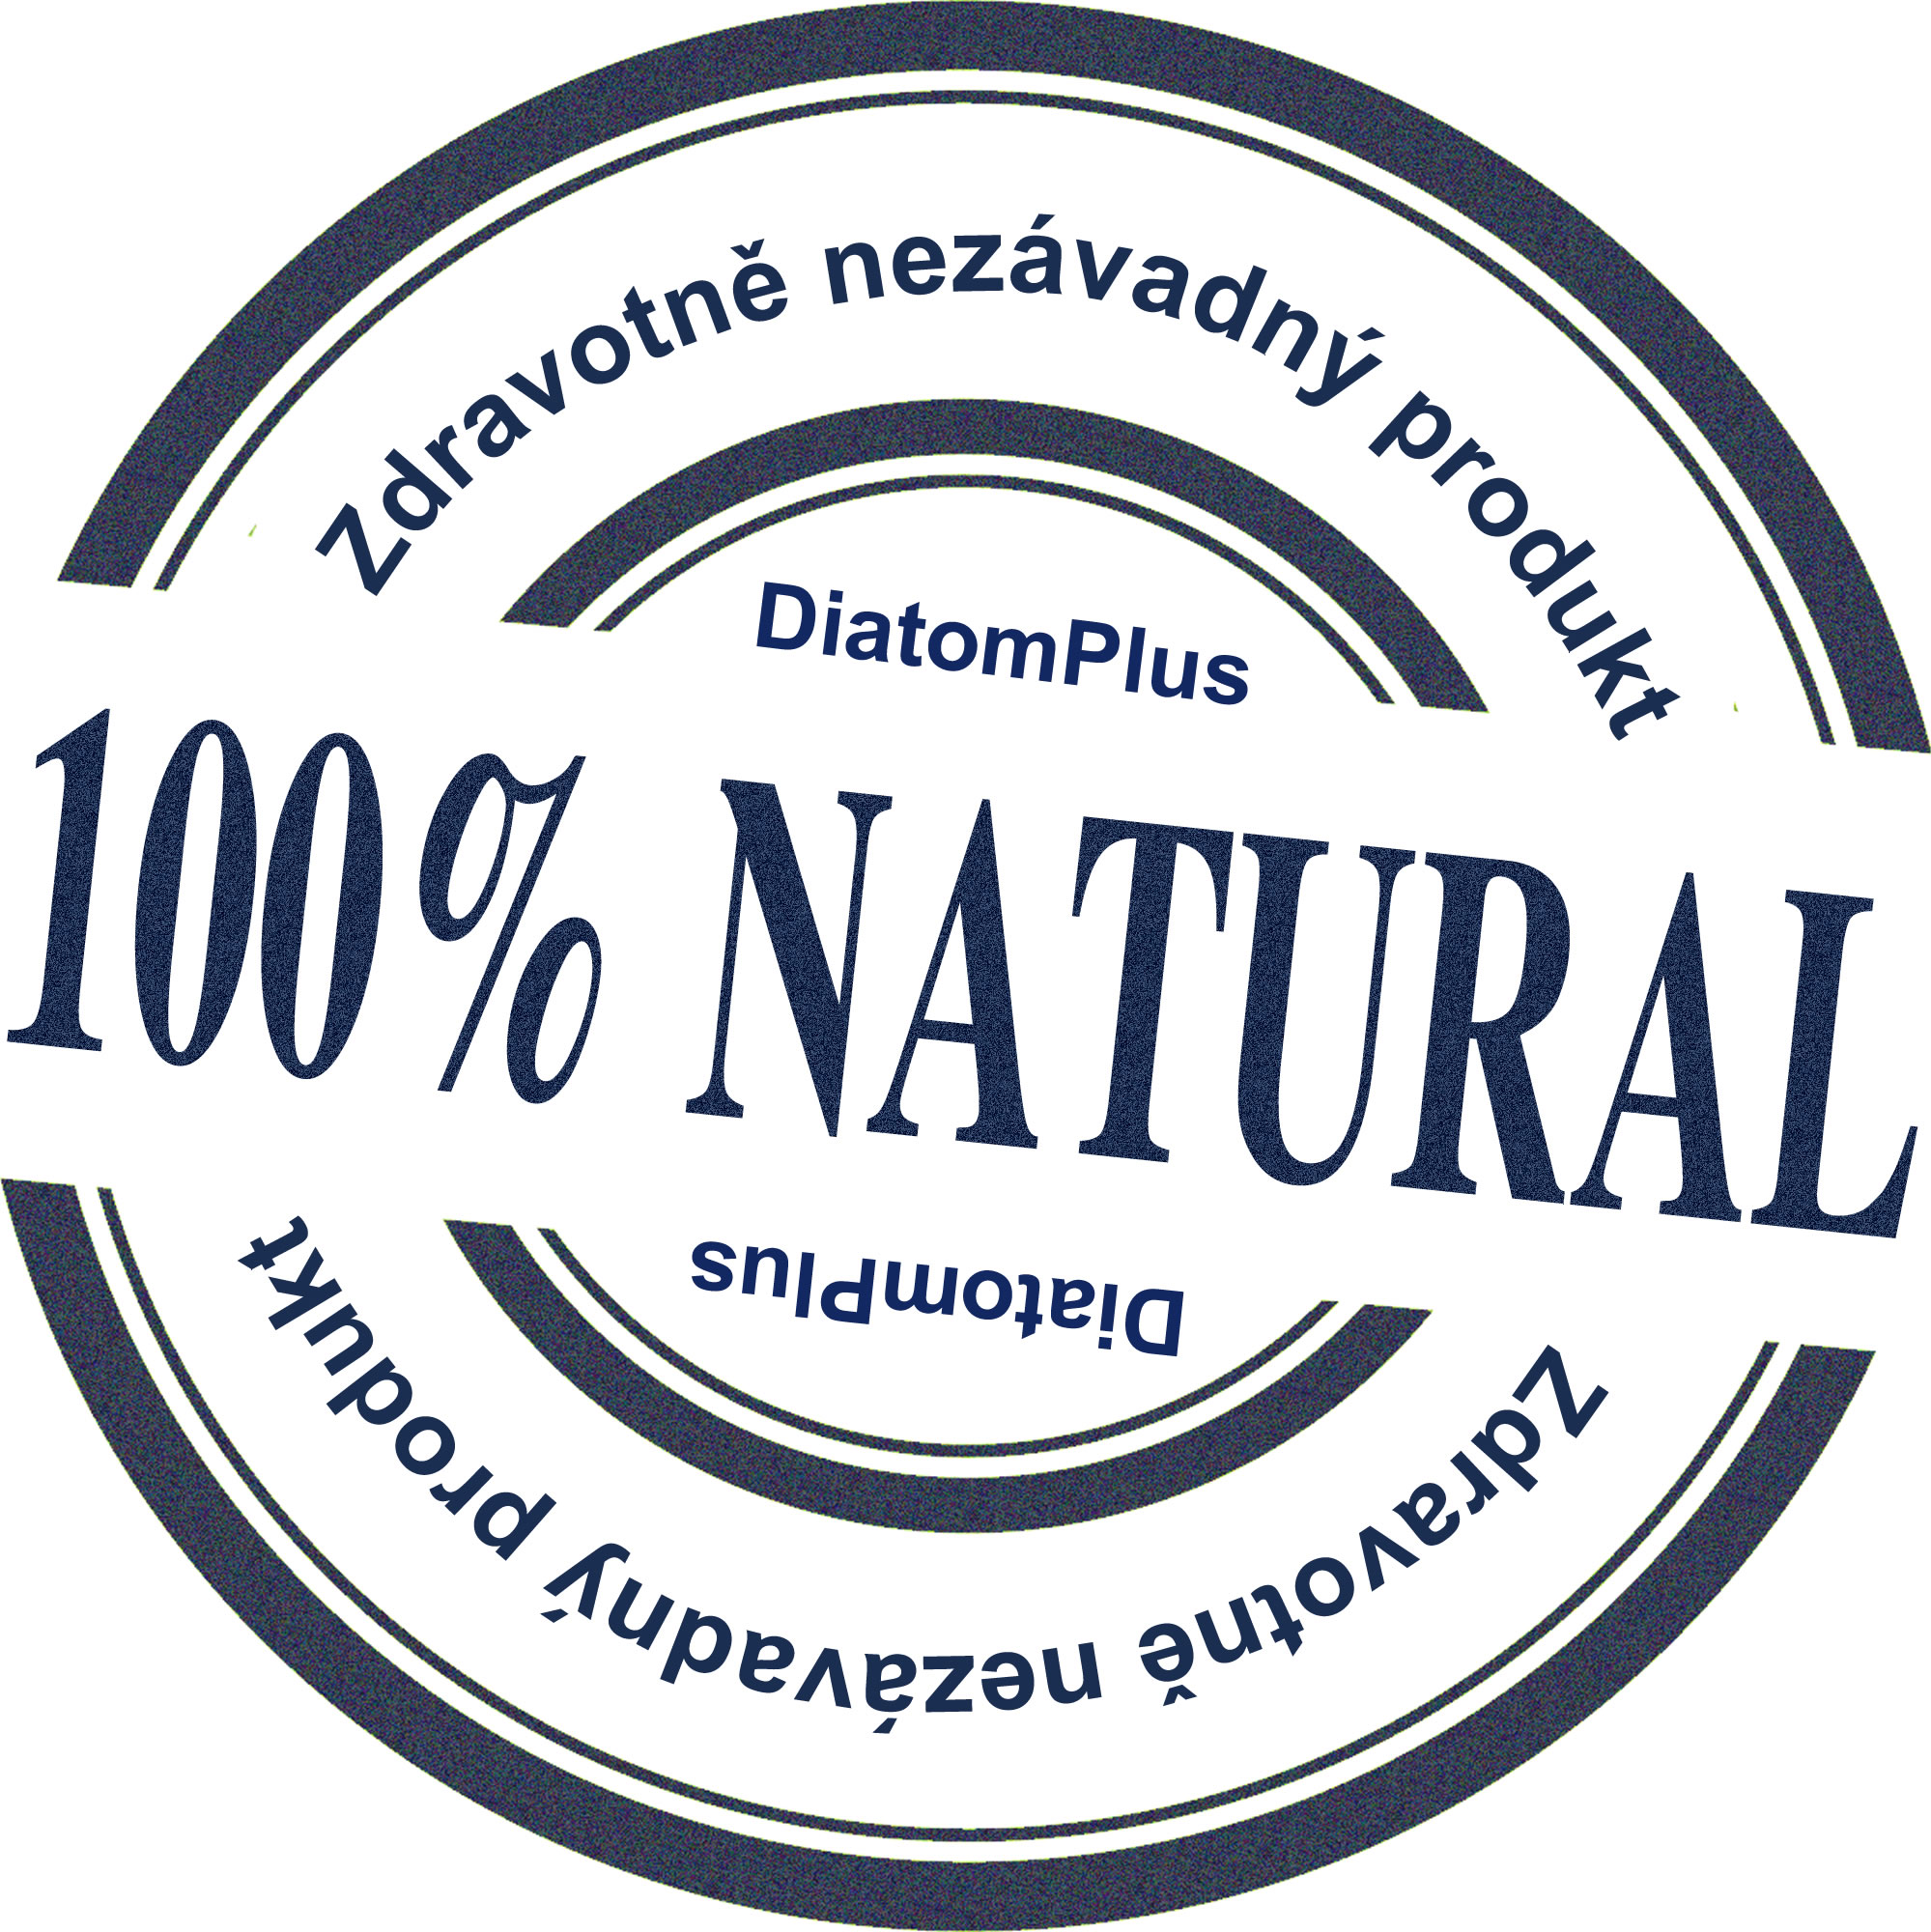 diatomplus-pure-natural-stamp-cz